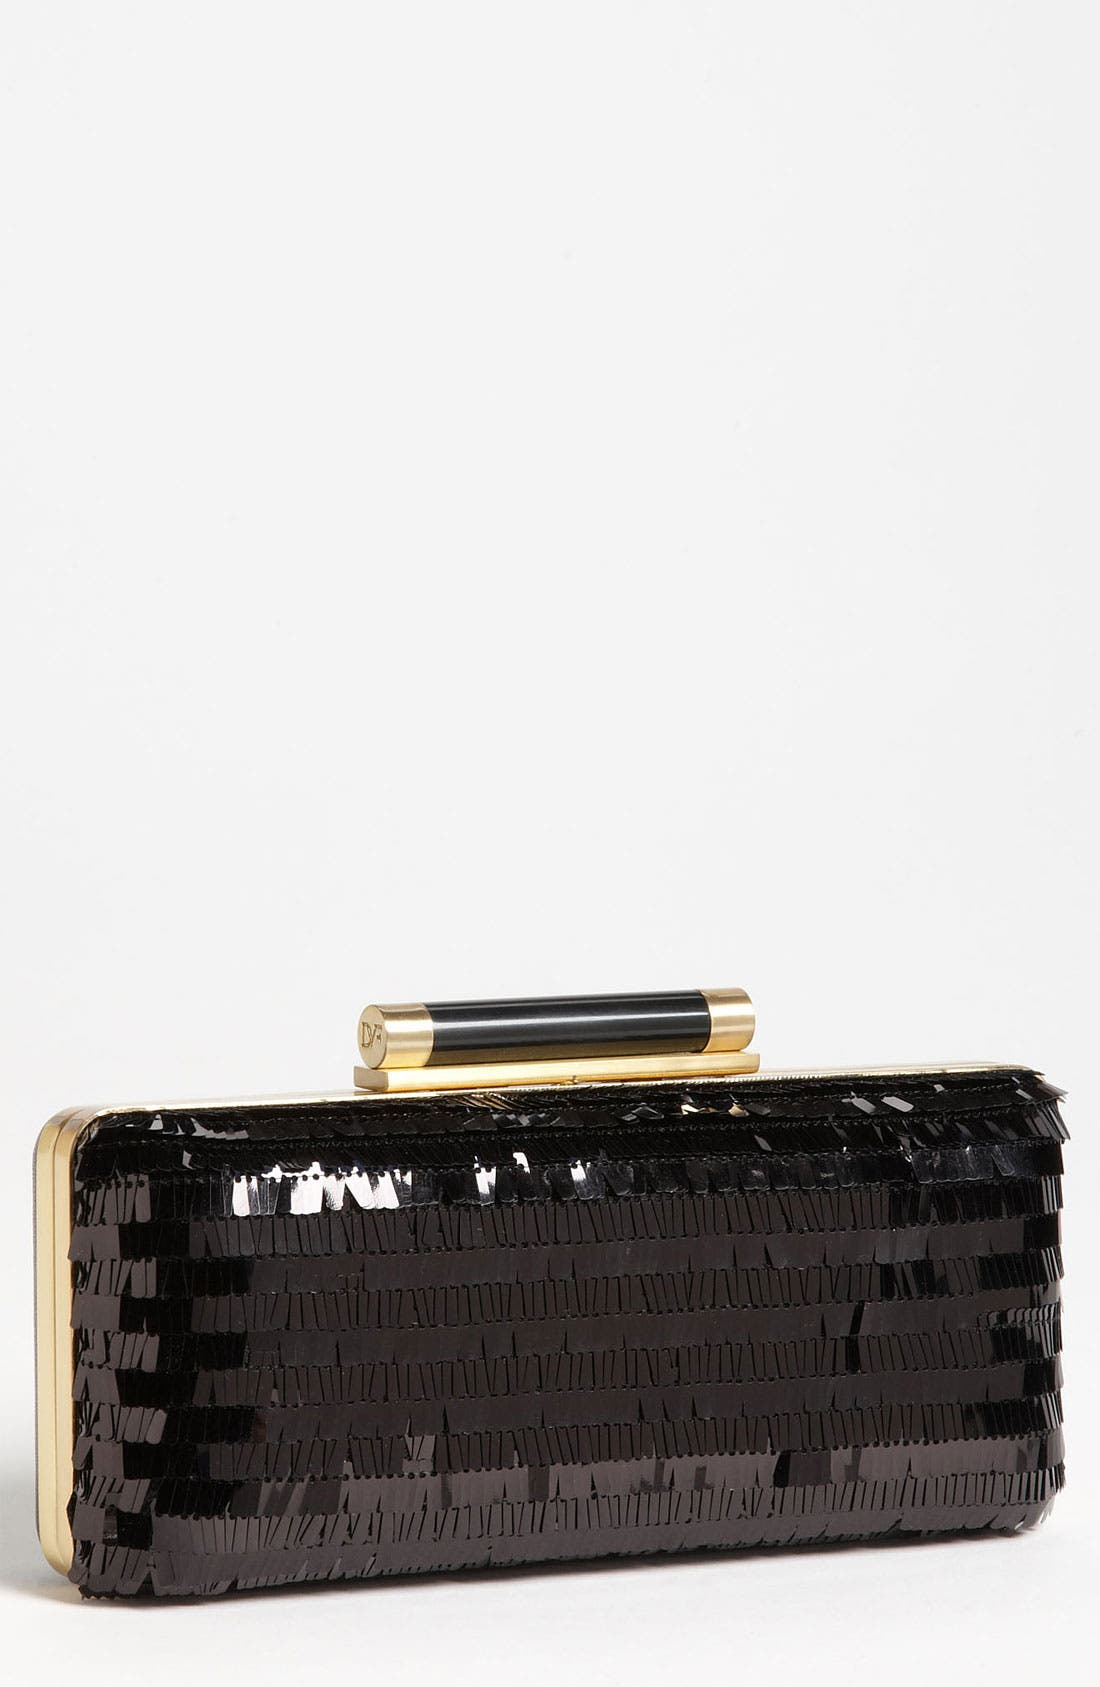 Main Image - Diane von Furstenberg 'Tonda - Large' Sequin & Leather Clutch